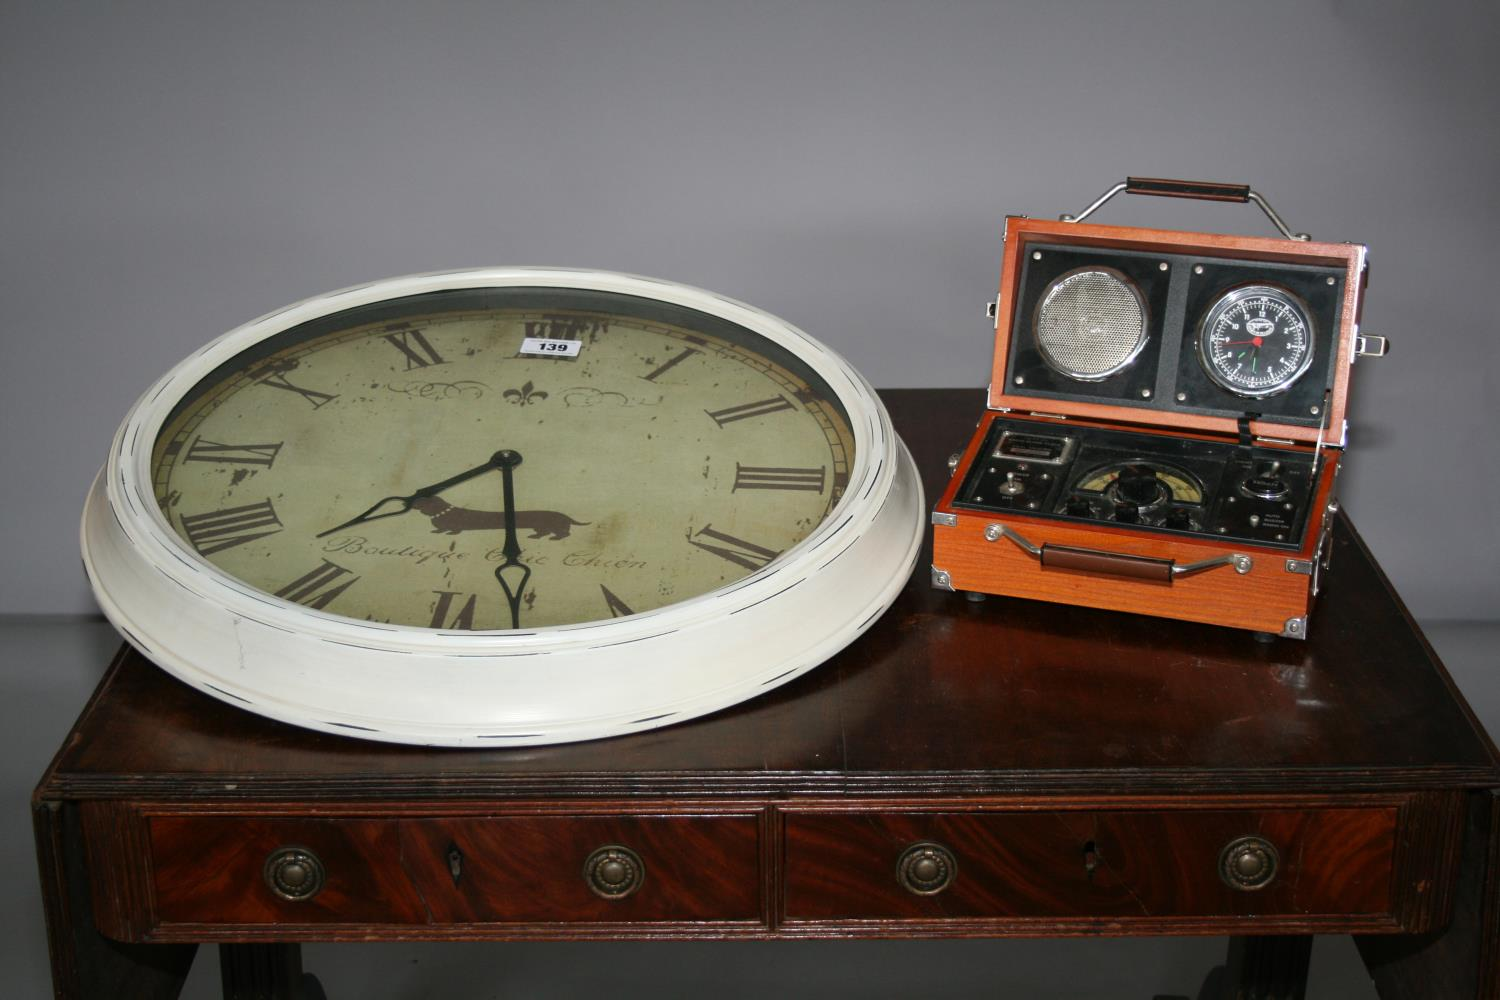 French vintage style wall clock (63W) and vintage design radio alarm clock (26W x 20H x 14D)